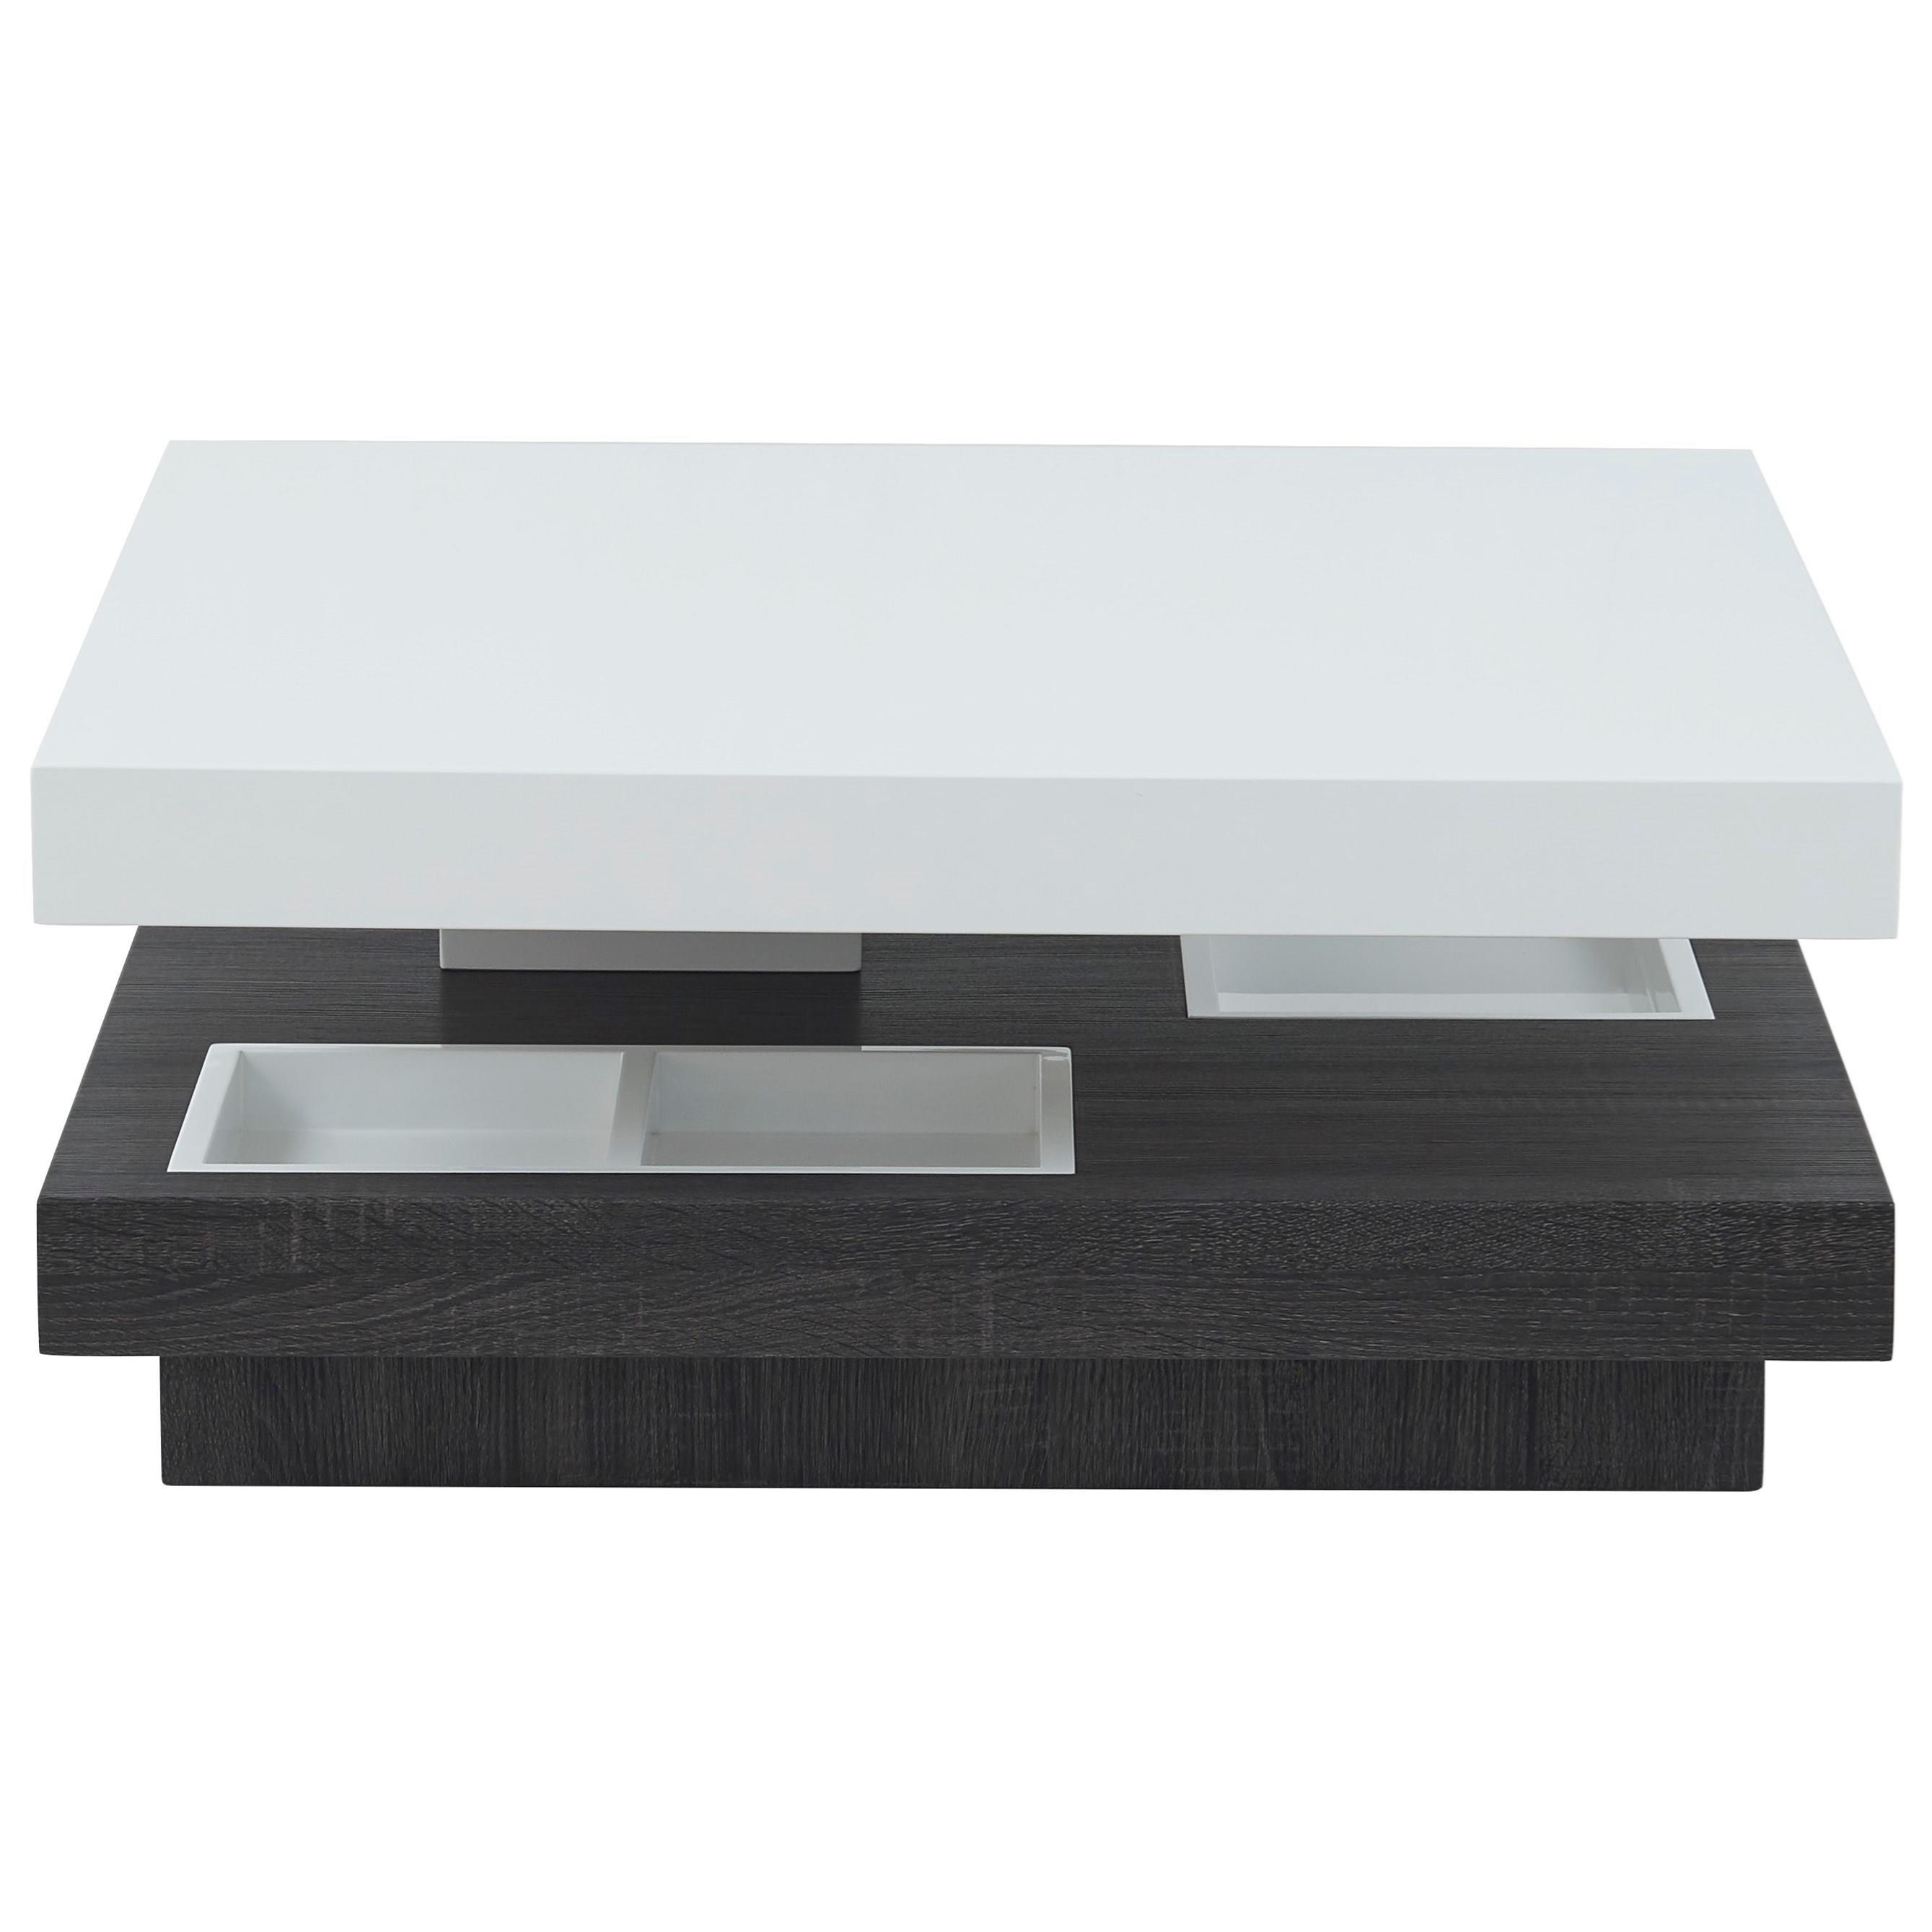 T53 Coffee Table by Global Furniture at Corner Furniture